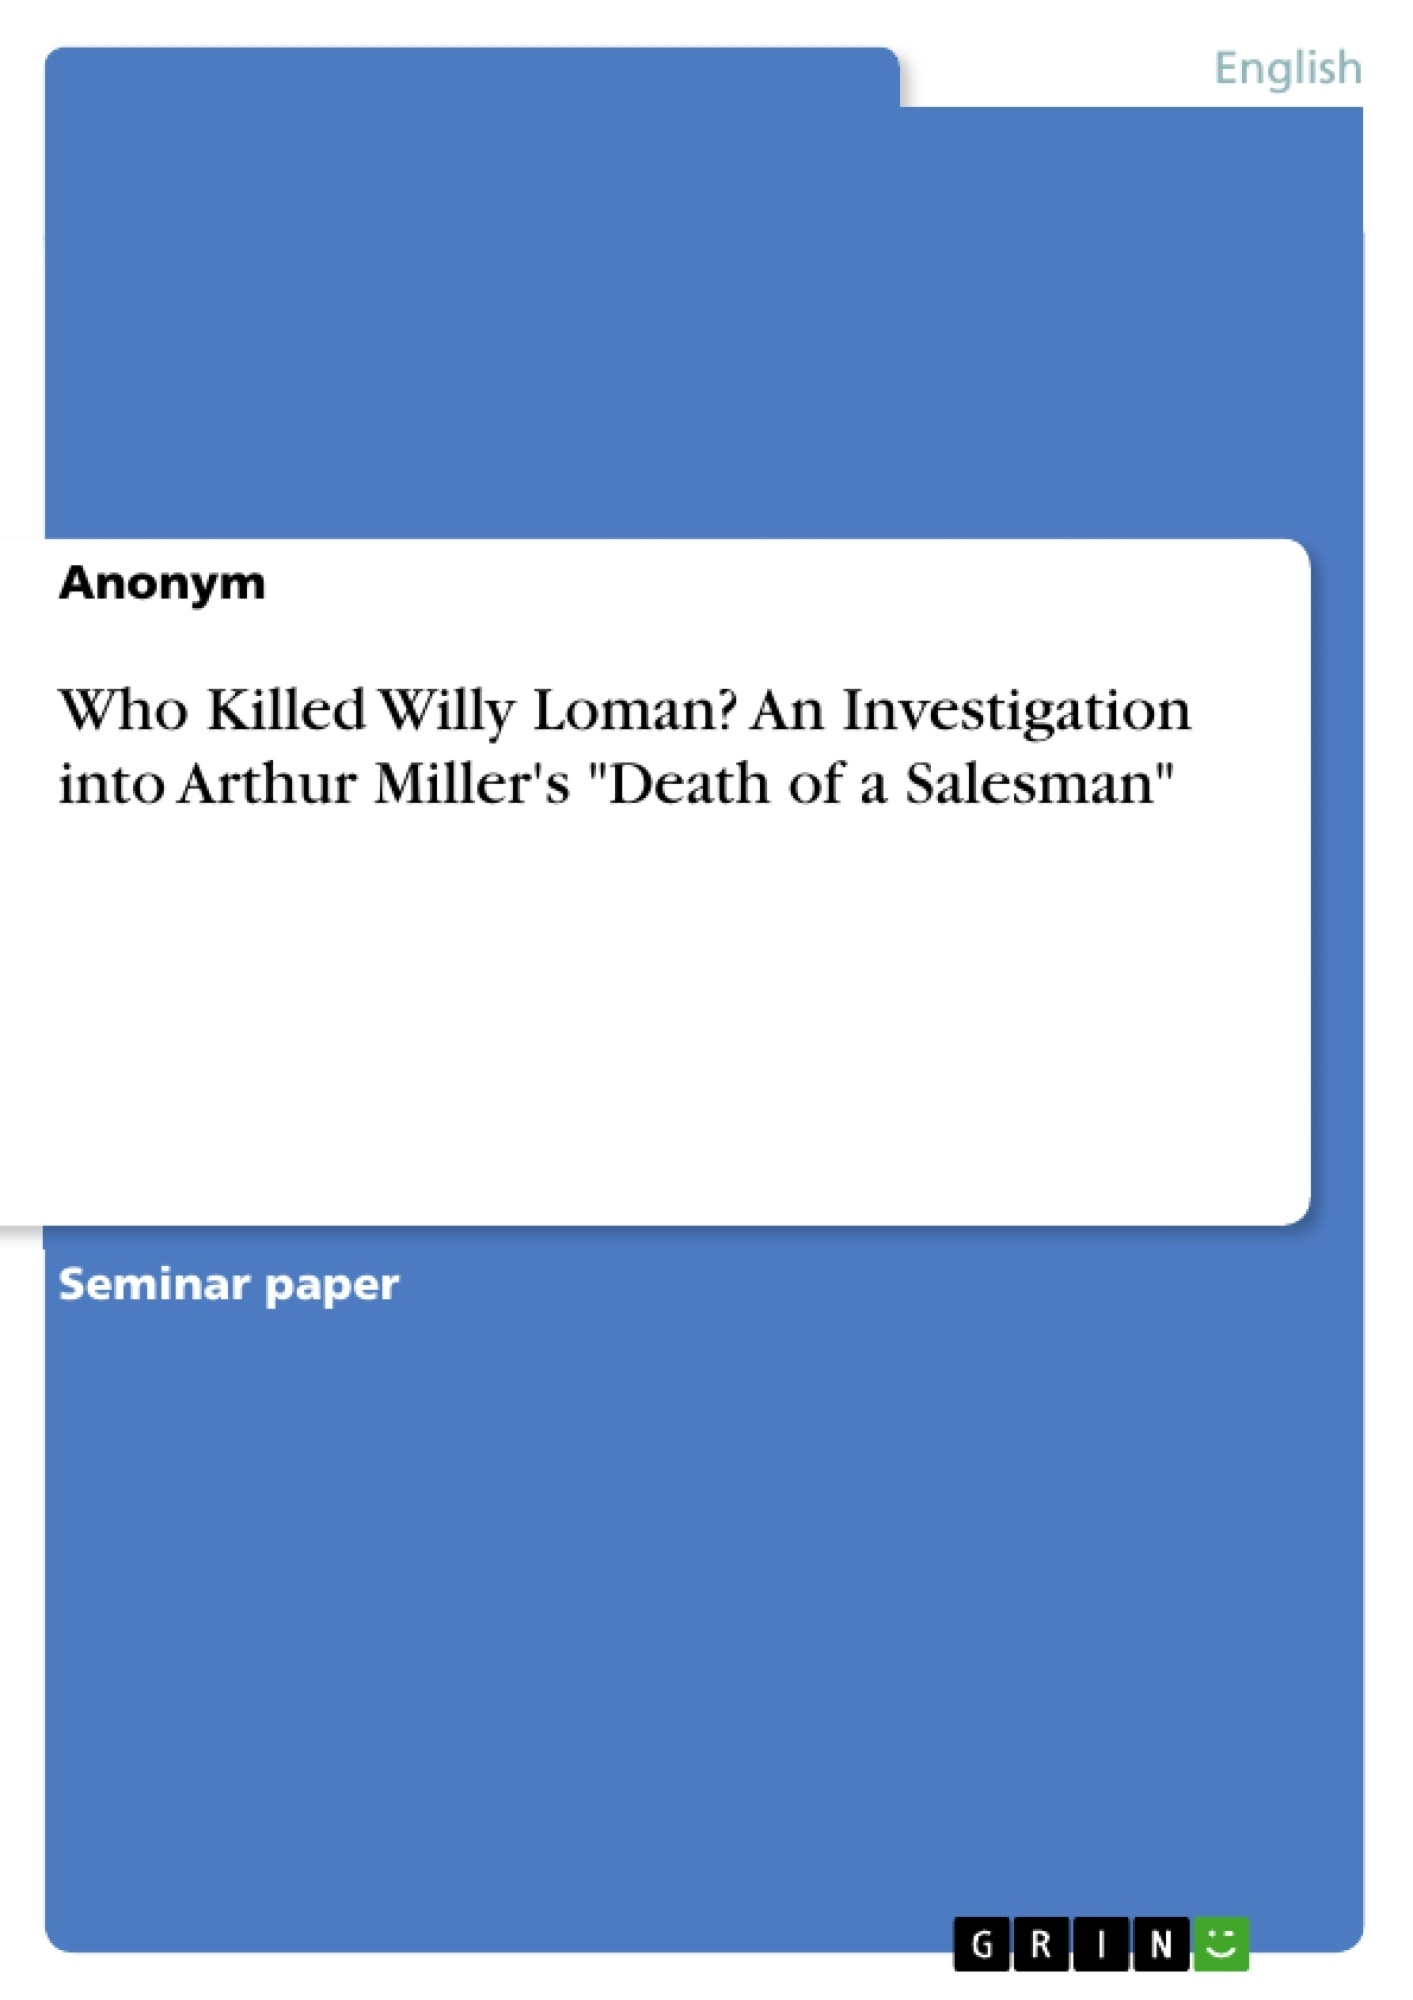 Death salesman term paper